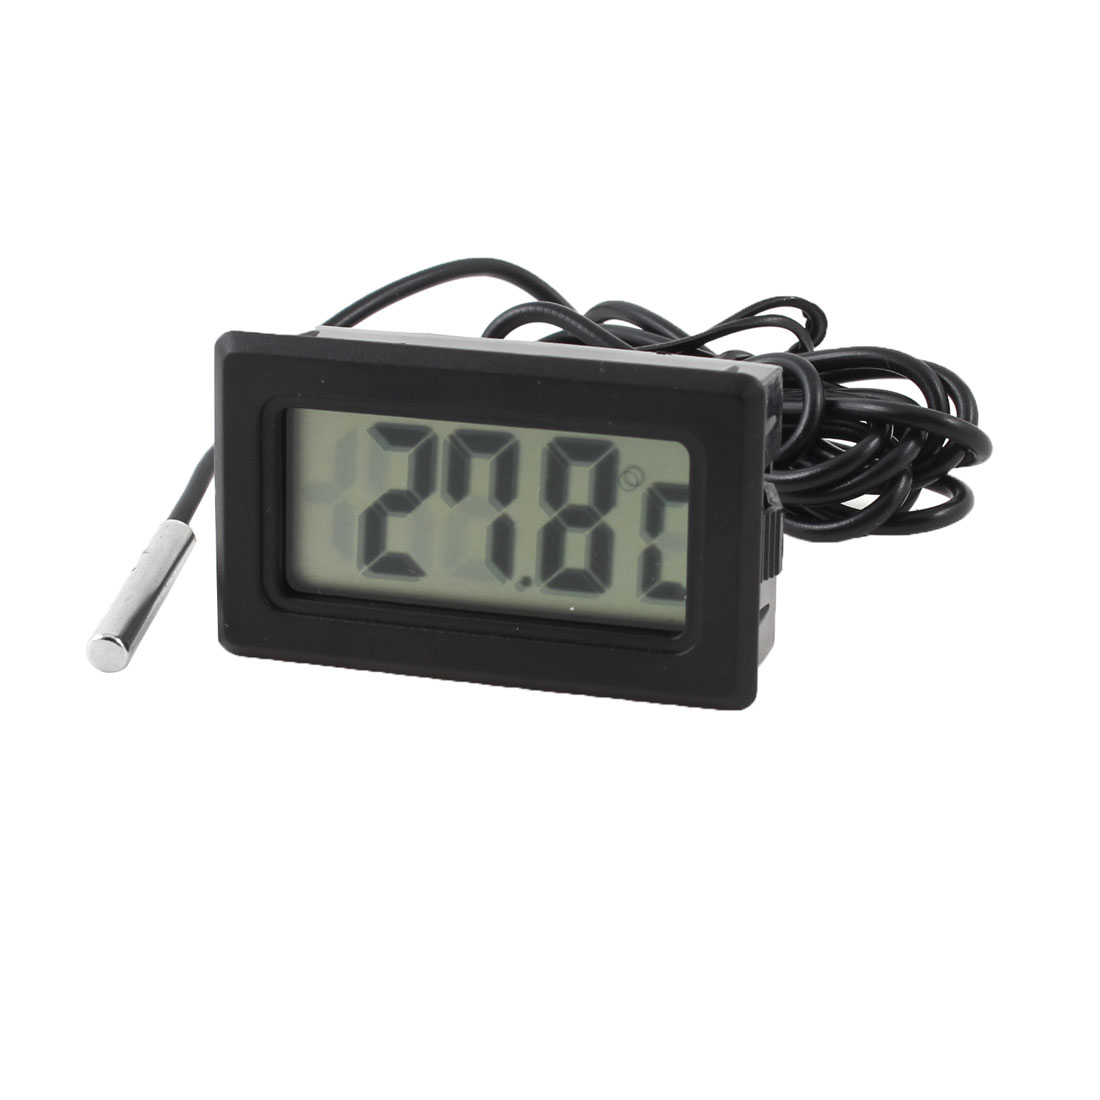 100cm Long Cable Black Plastic Housing LCD Display Digital Thermometer